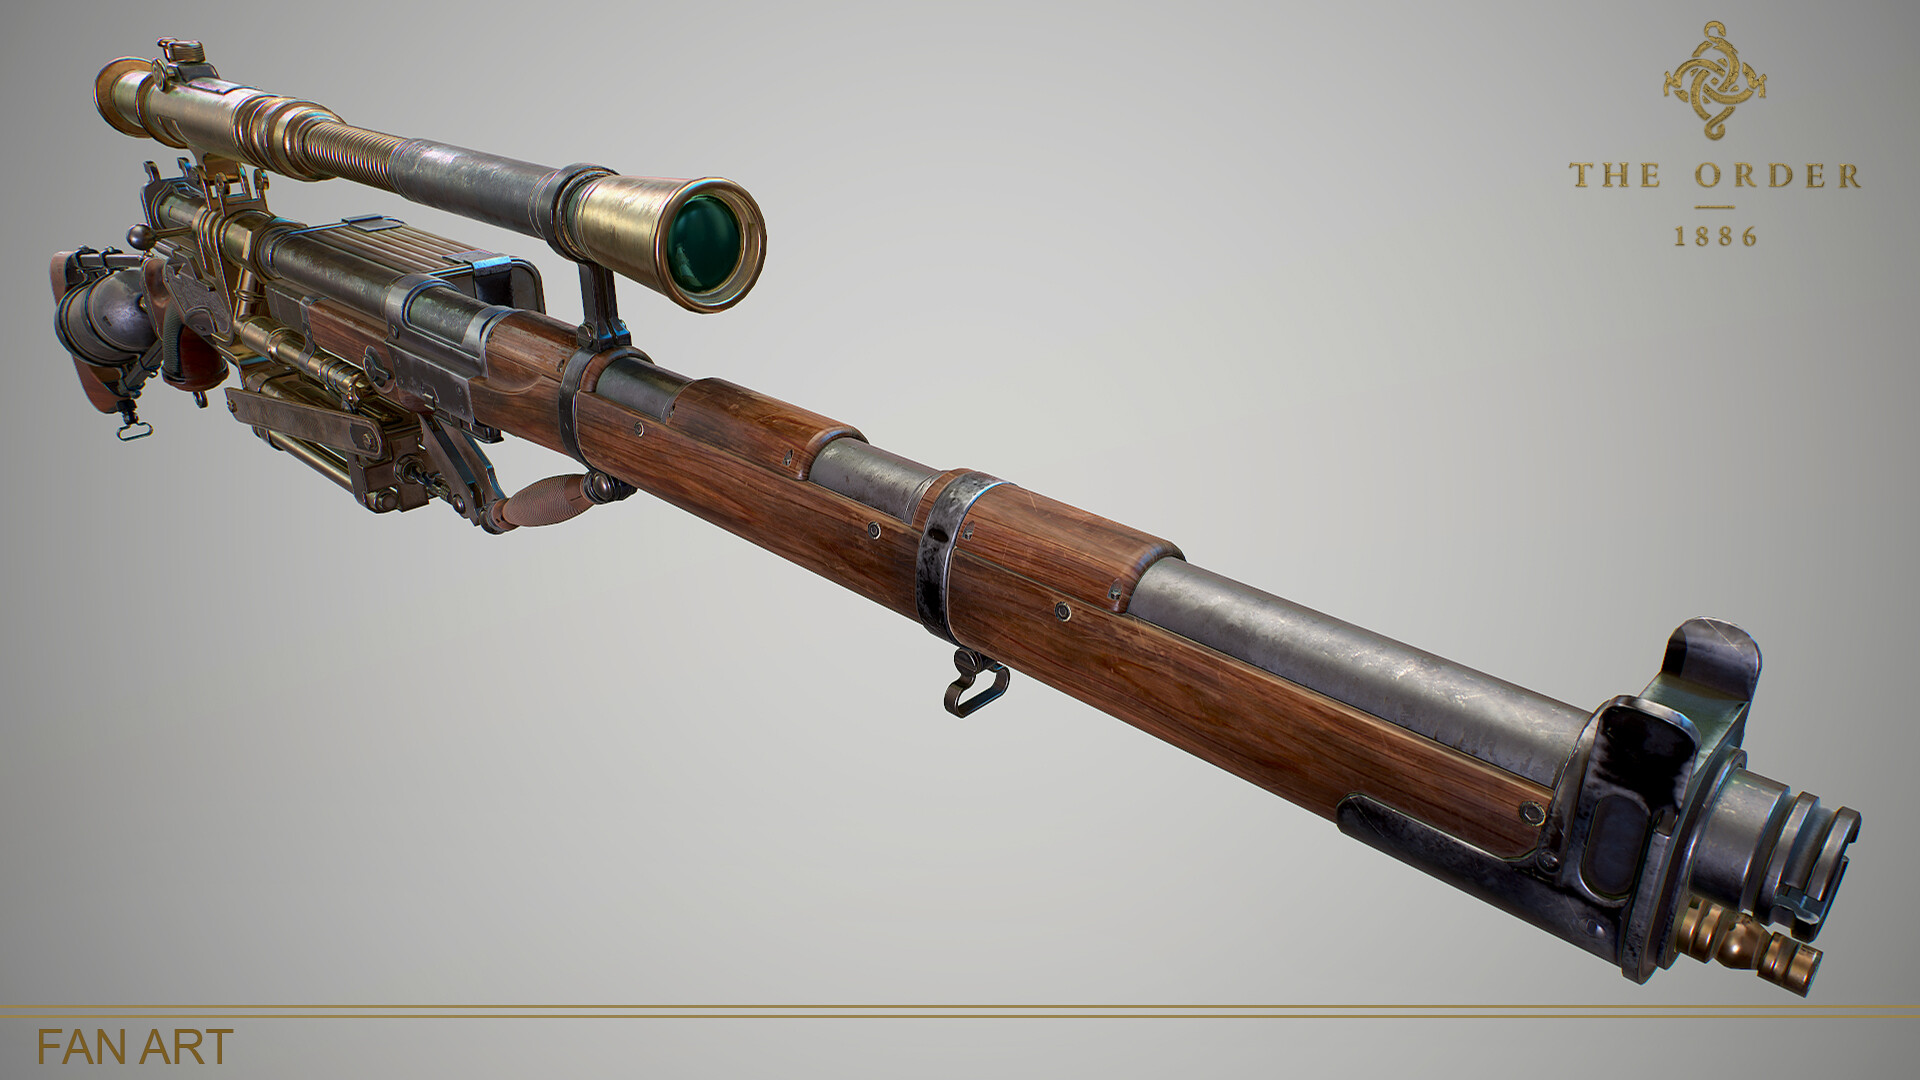 ArtStation - The Order 1886 : Pneumatic Rifle (FanArt